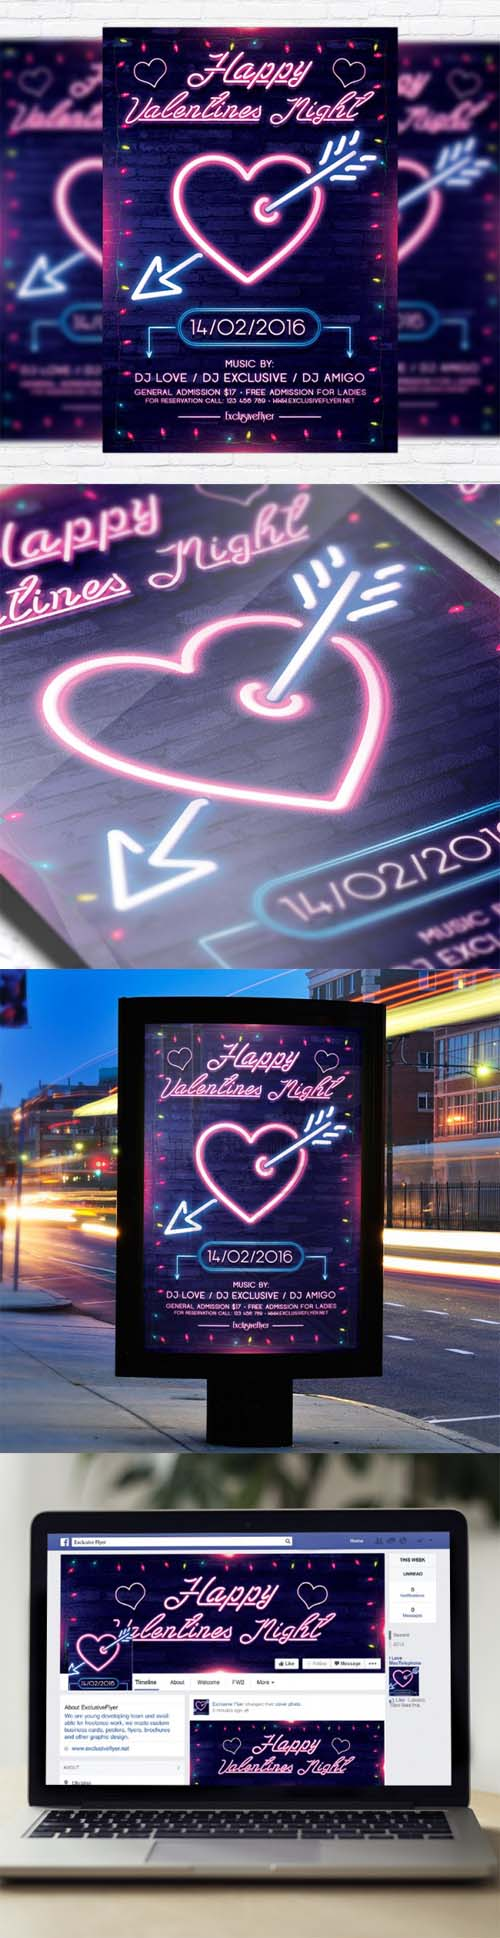 Flyer Template - Neon Valentines Night + Facebook Cover